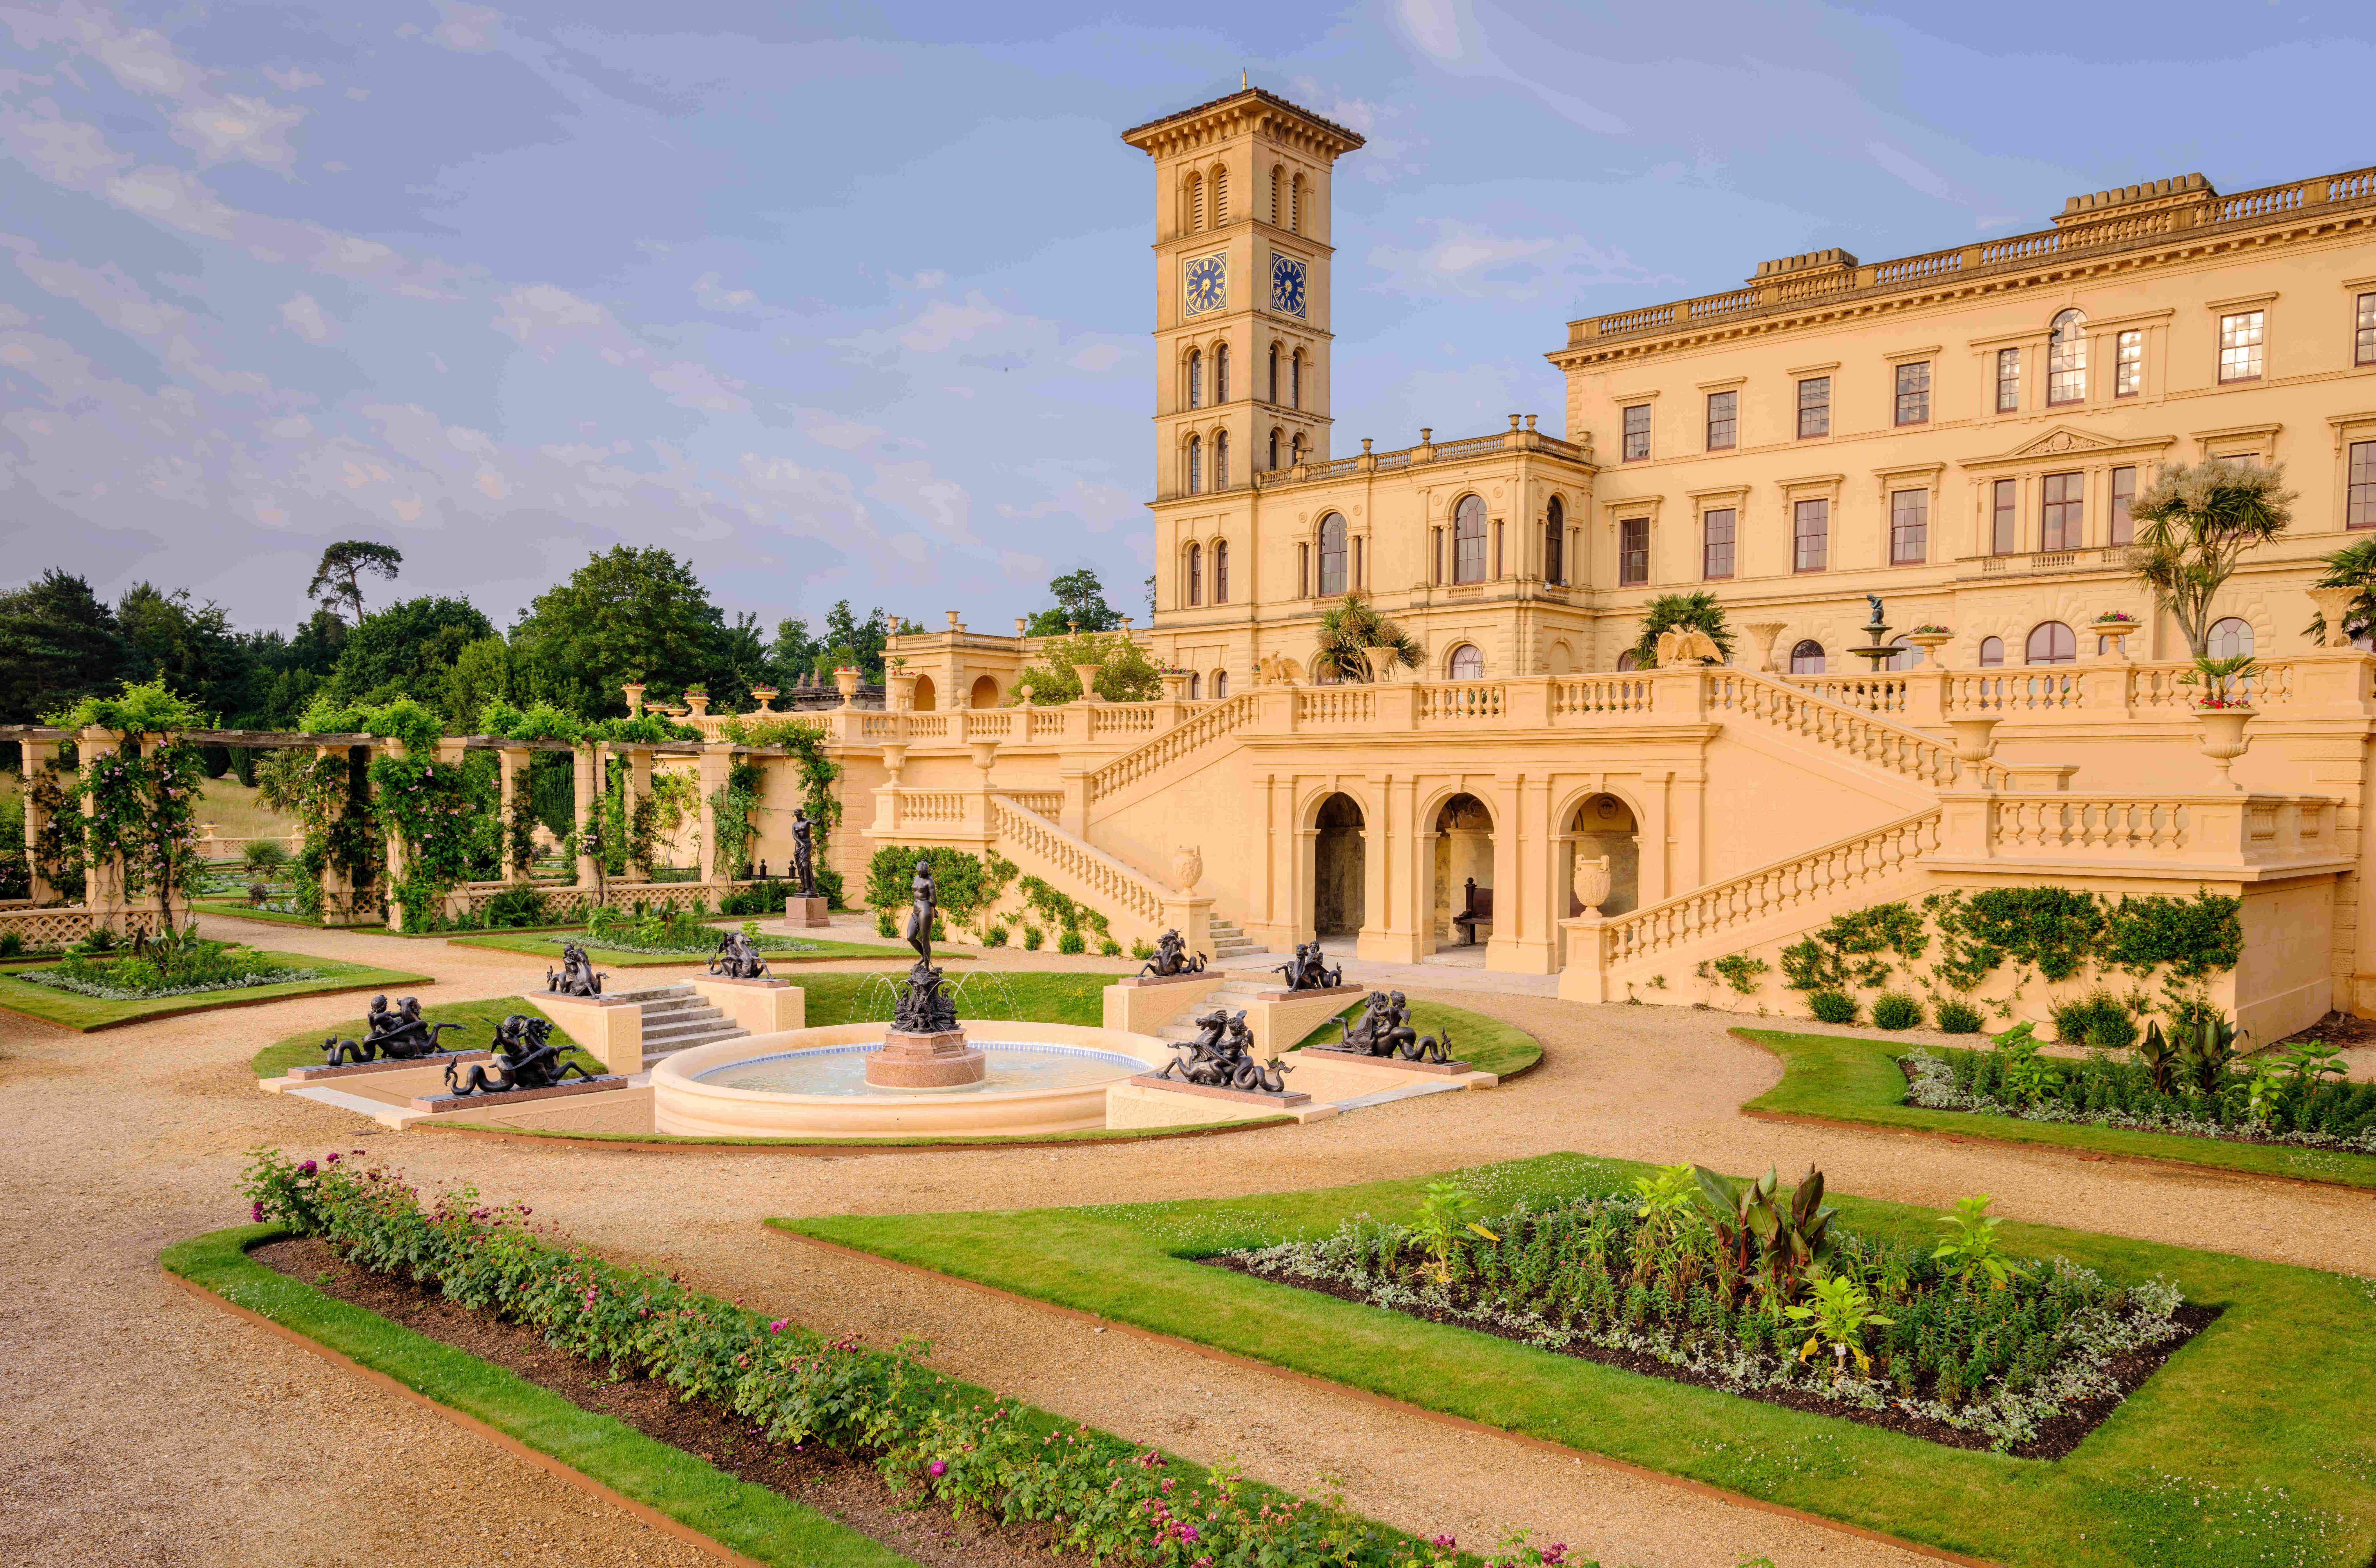 Queen Victoria's private garden terrace on the Isle of Wight opens to the public